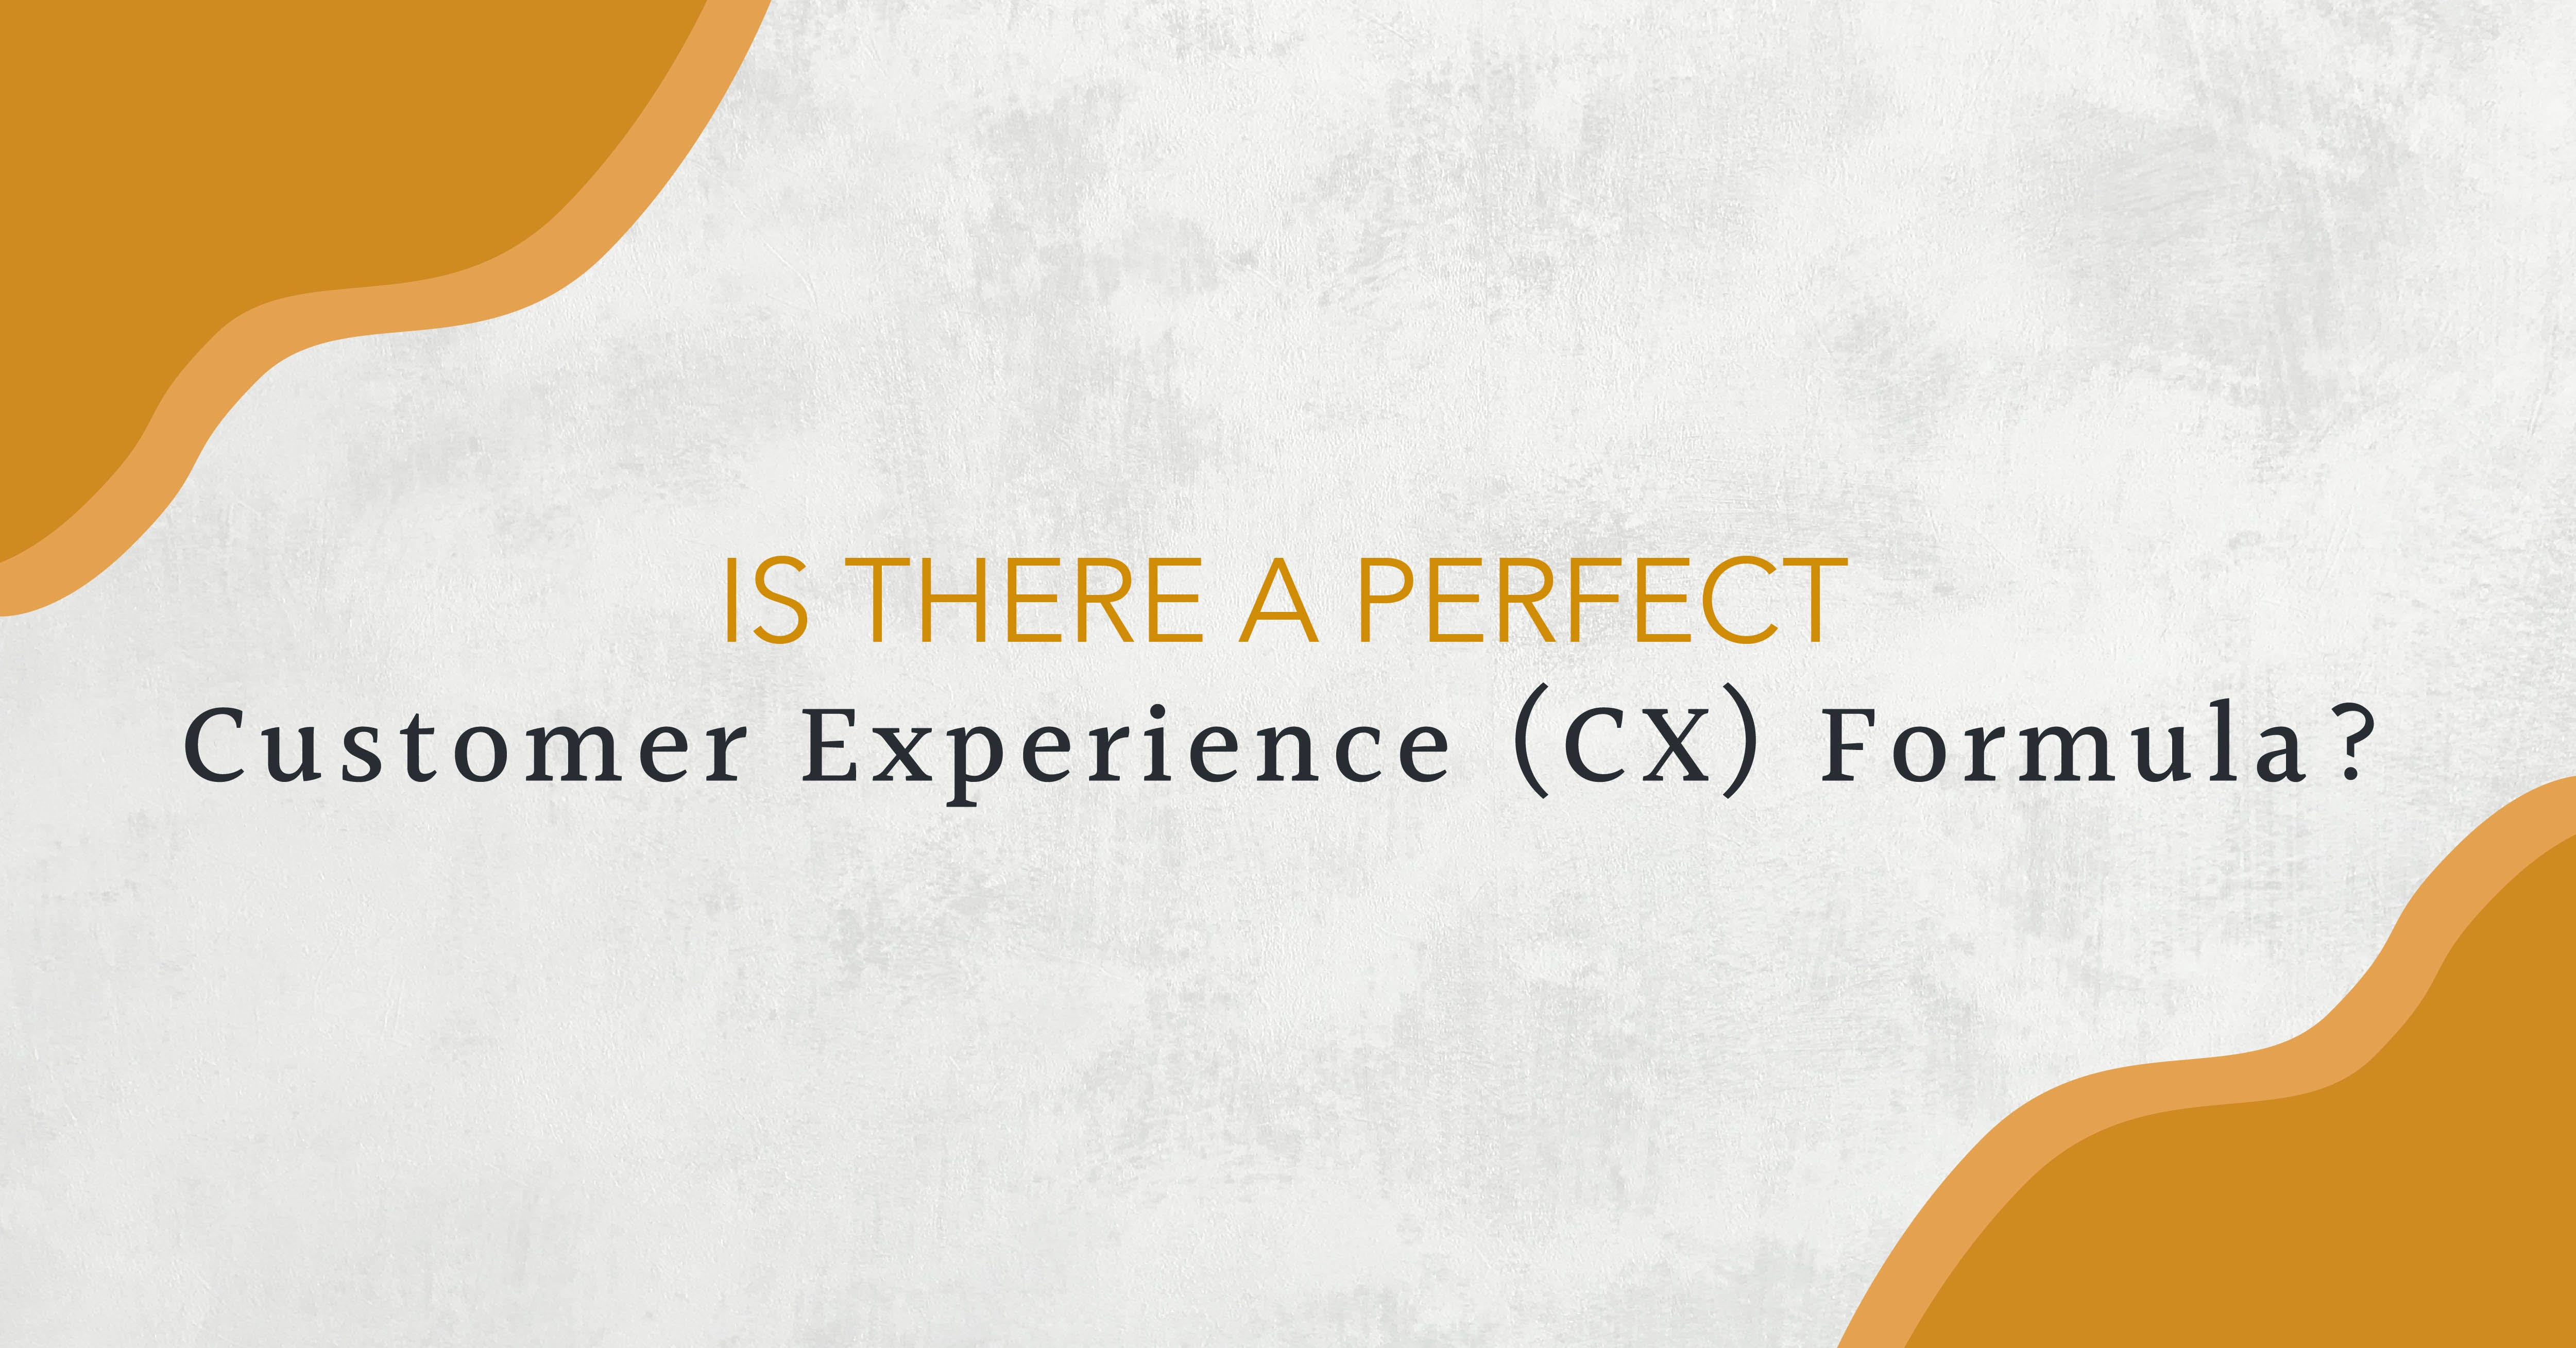 Is There a Perfect Customer Experience (CX) Formula? image